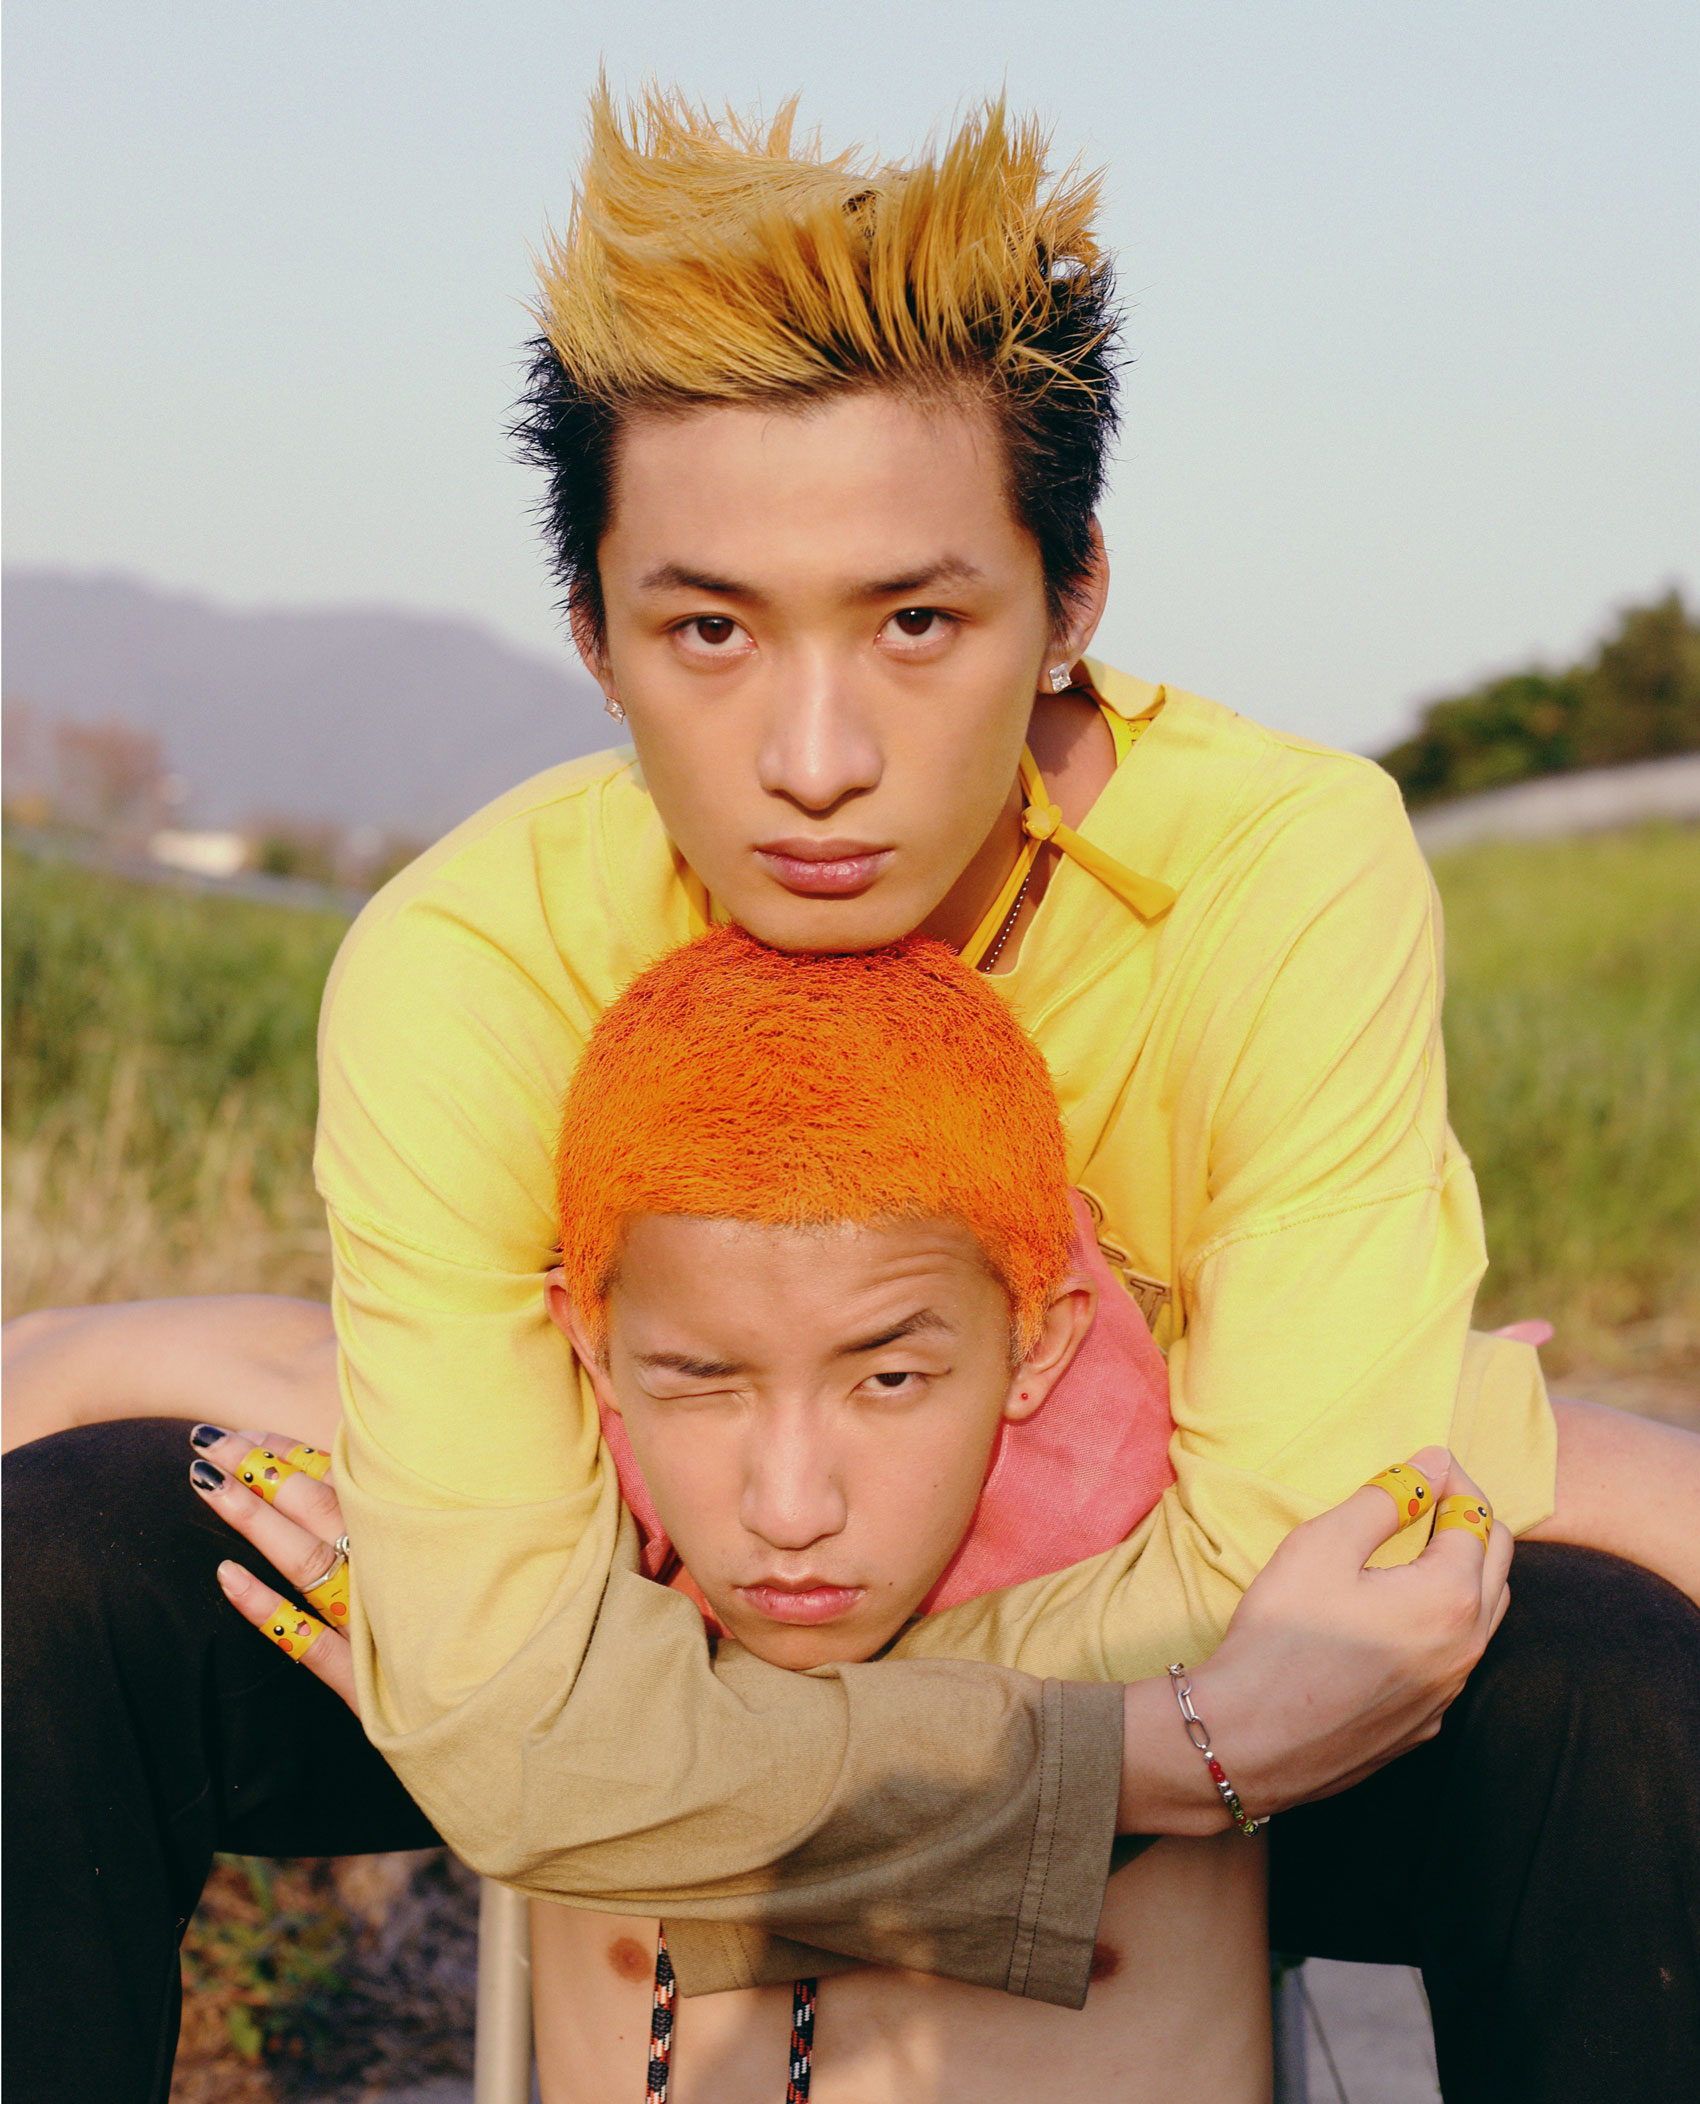 a young man with yellow hair sits behind a topless man with bright orange hair, wrapping his arms around him affectionately